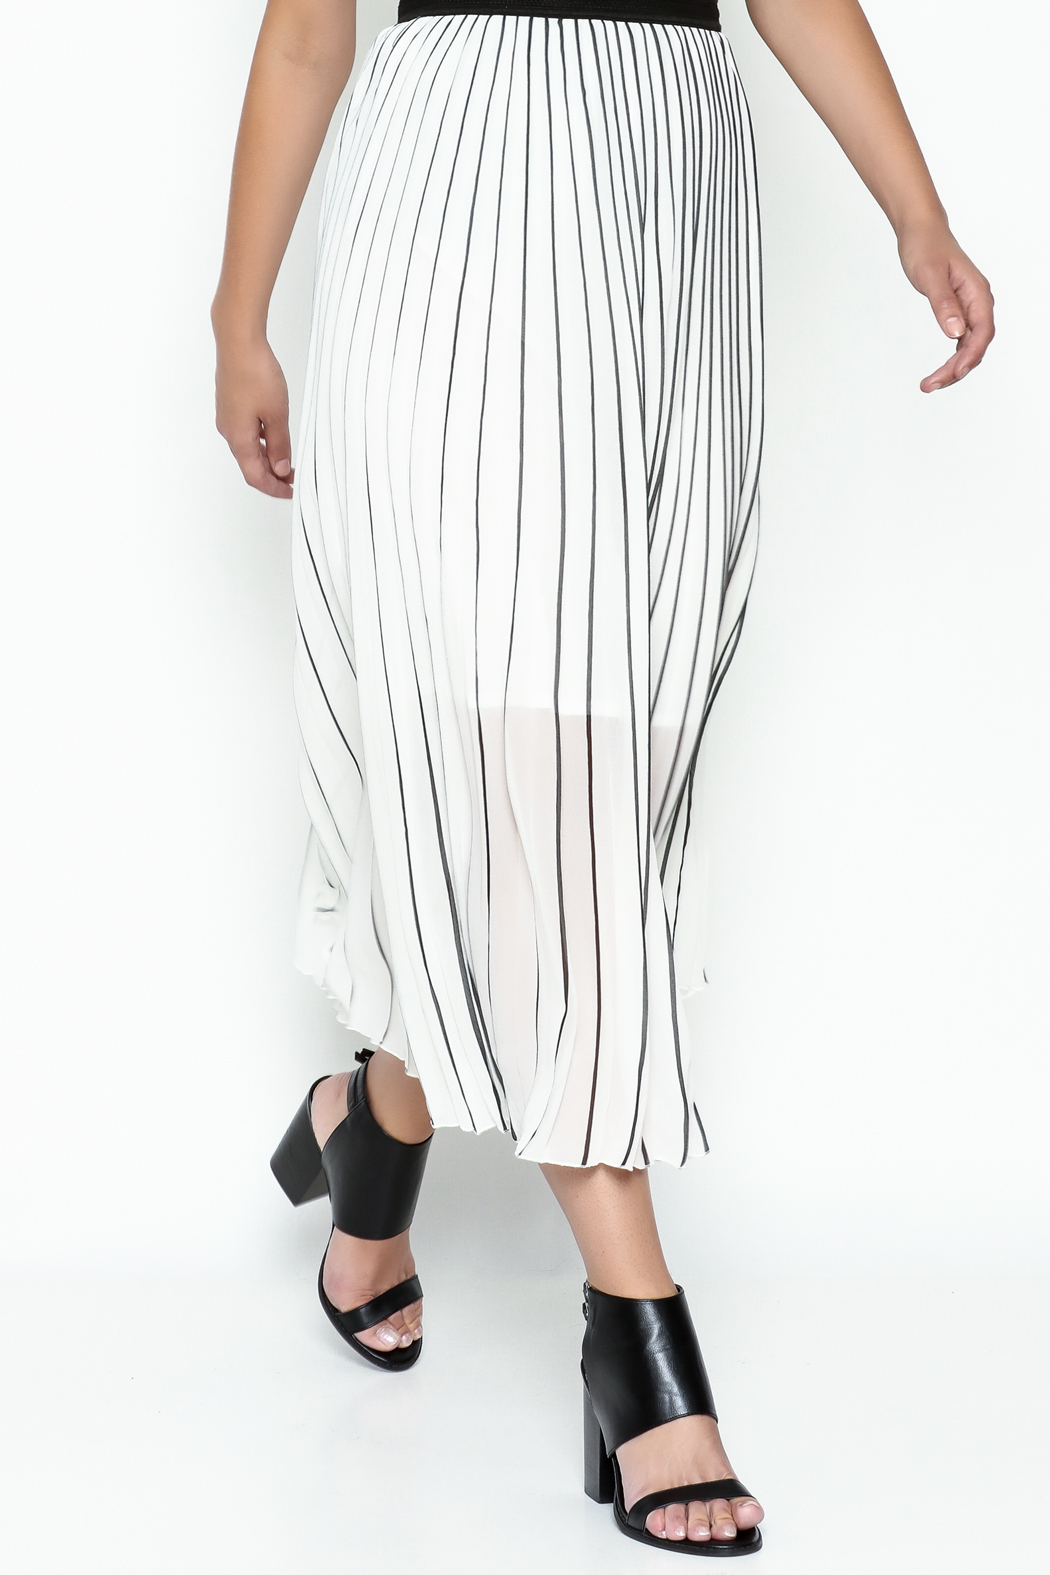 MC Oasis Striped White Skirt - Front Cropped Image